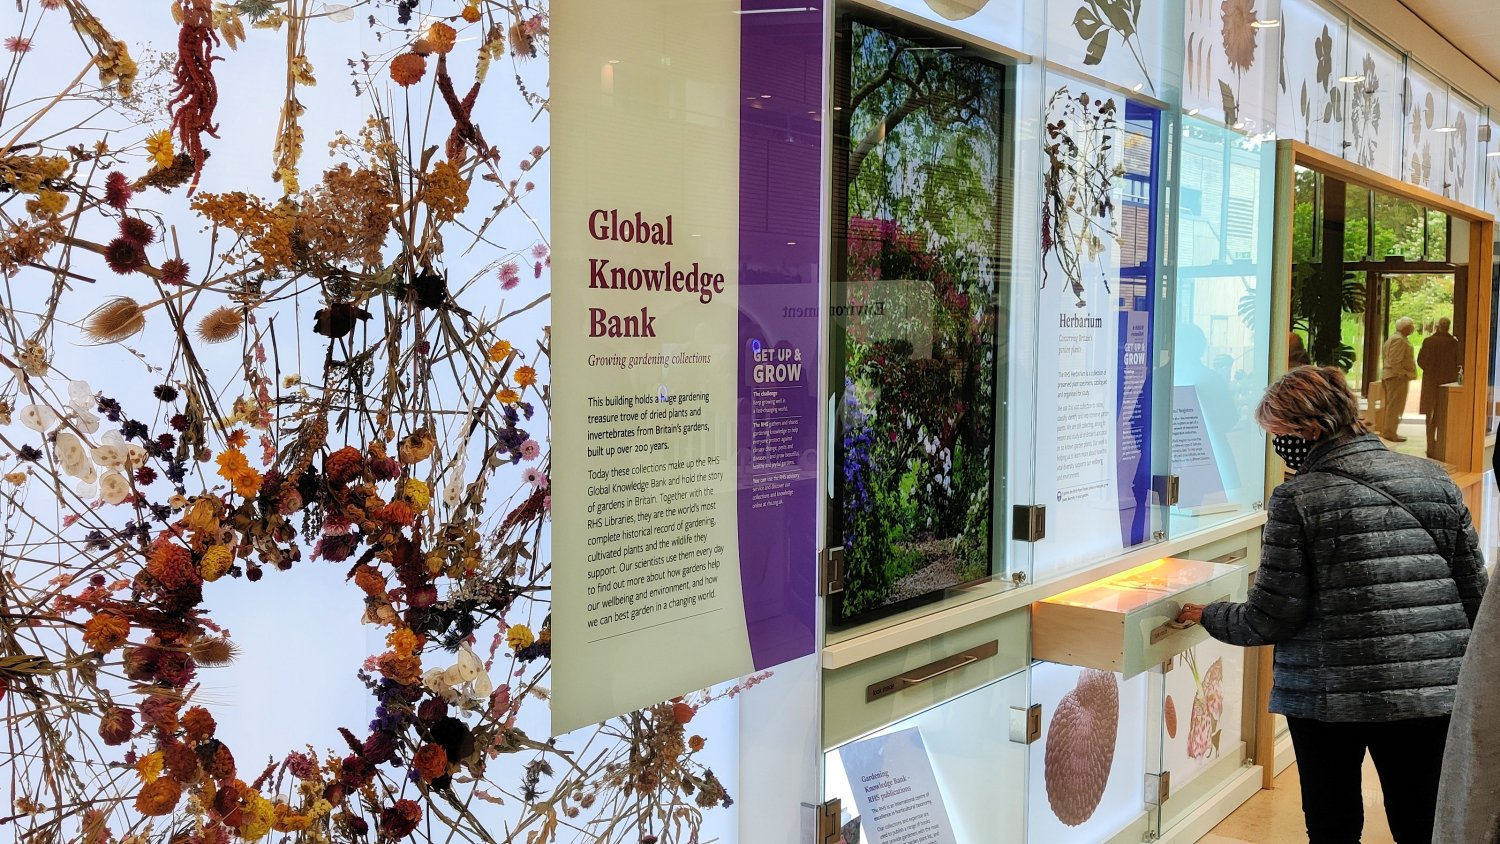 Part of the Global Knowledge Bank exhibition